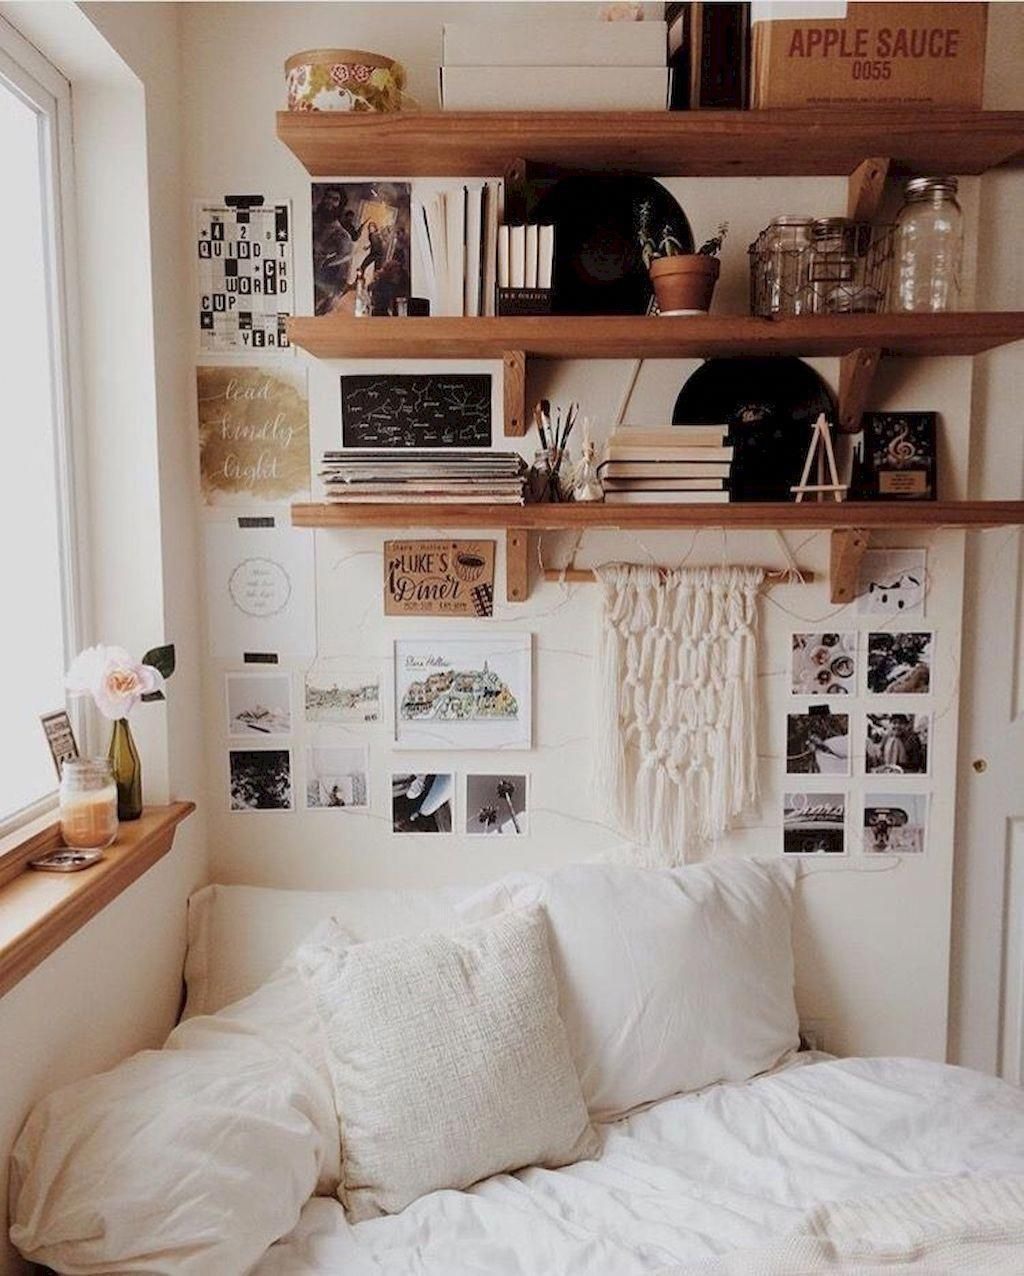 Low Budget Decorating Ideas For Living Rooms Cheap Home Interior Design Ideas Simple H Small Bedroom Ideas On A Budget Diy Apartment Decor Room Inspiration